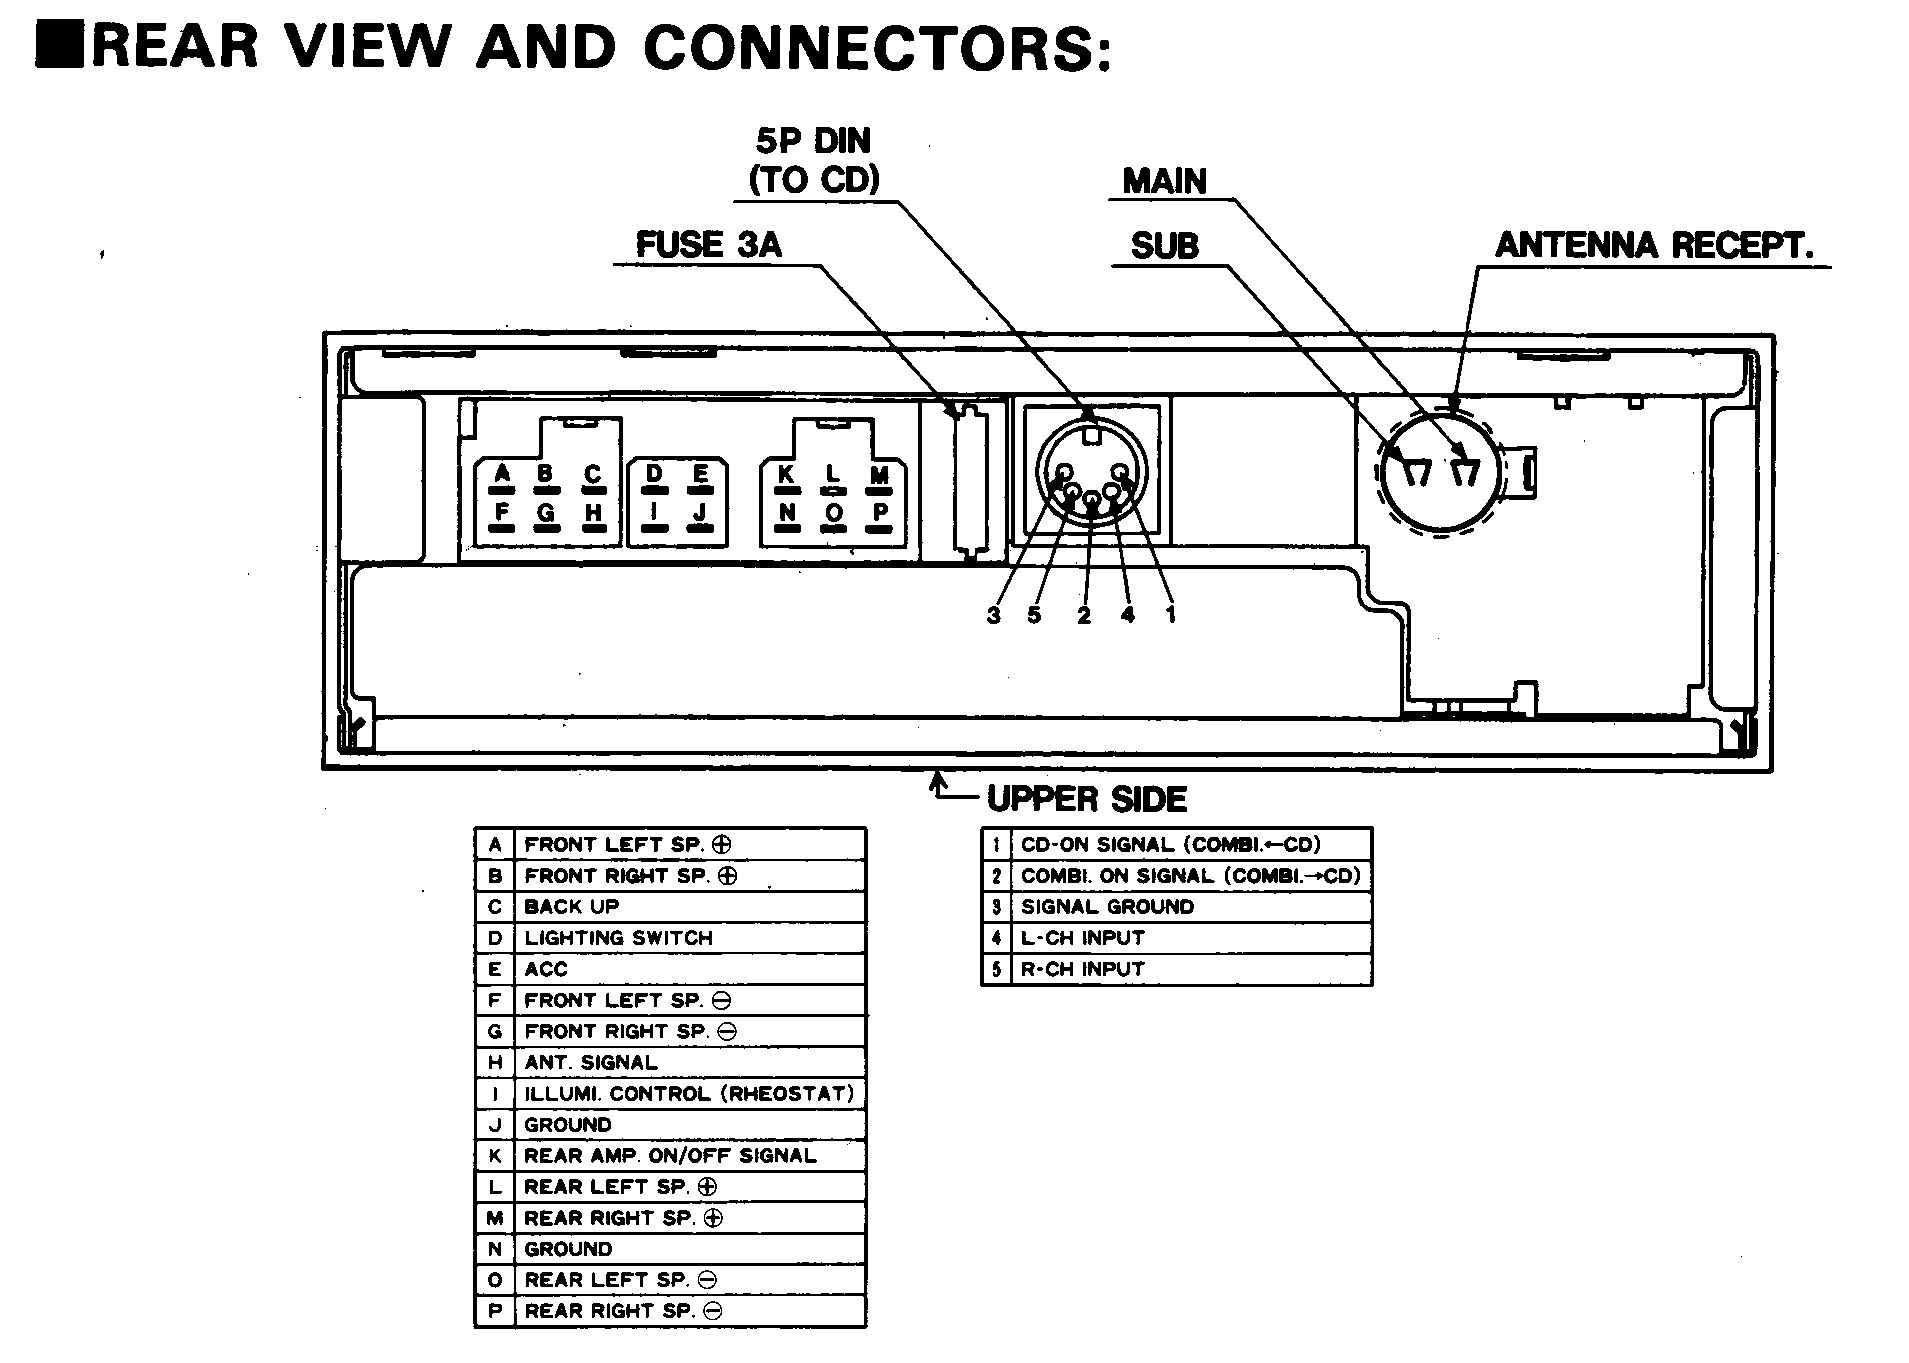 Audio Amp Wiring Diagram Gmc - Free Vehicle Wiring Diagrams •